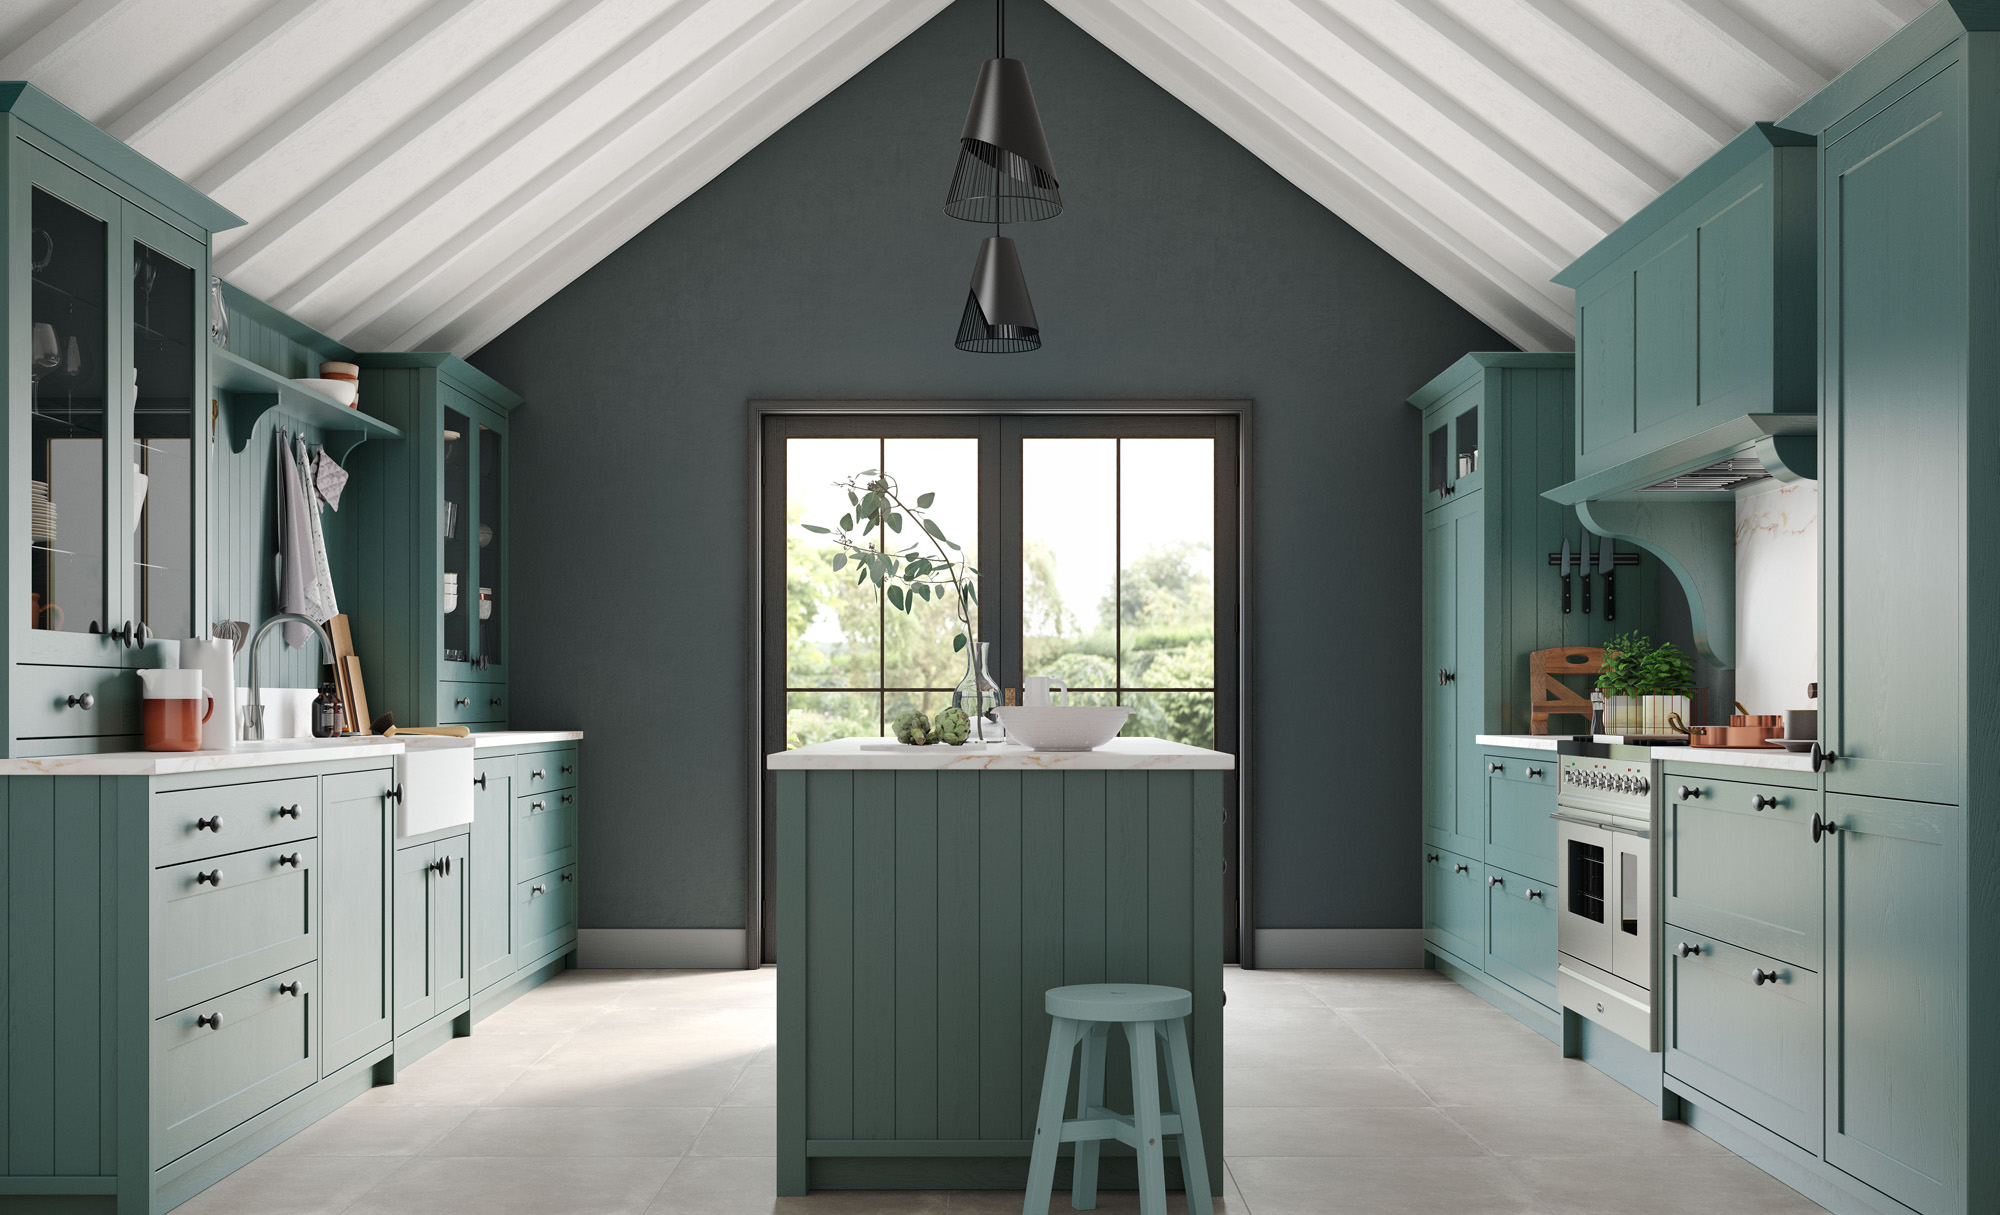 http://www.gurteenkitchens.ie/wp-content/uploads/2018/03/traditional-classic-country-aldana-painted-viridian-kitchen-hero.jpg